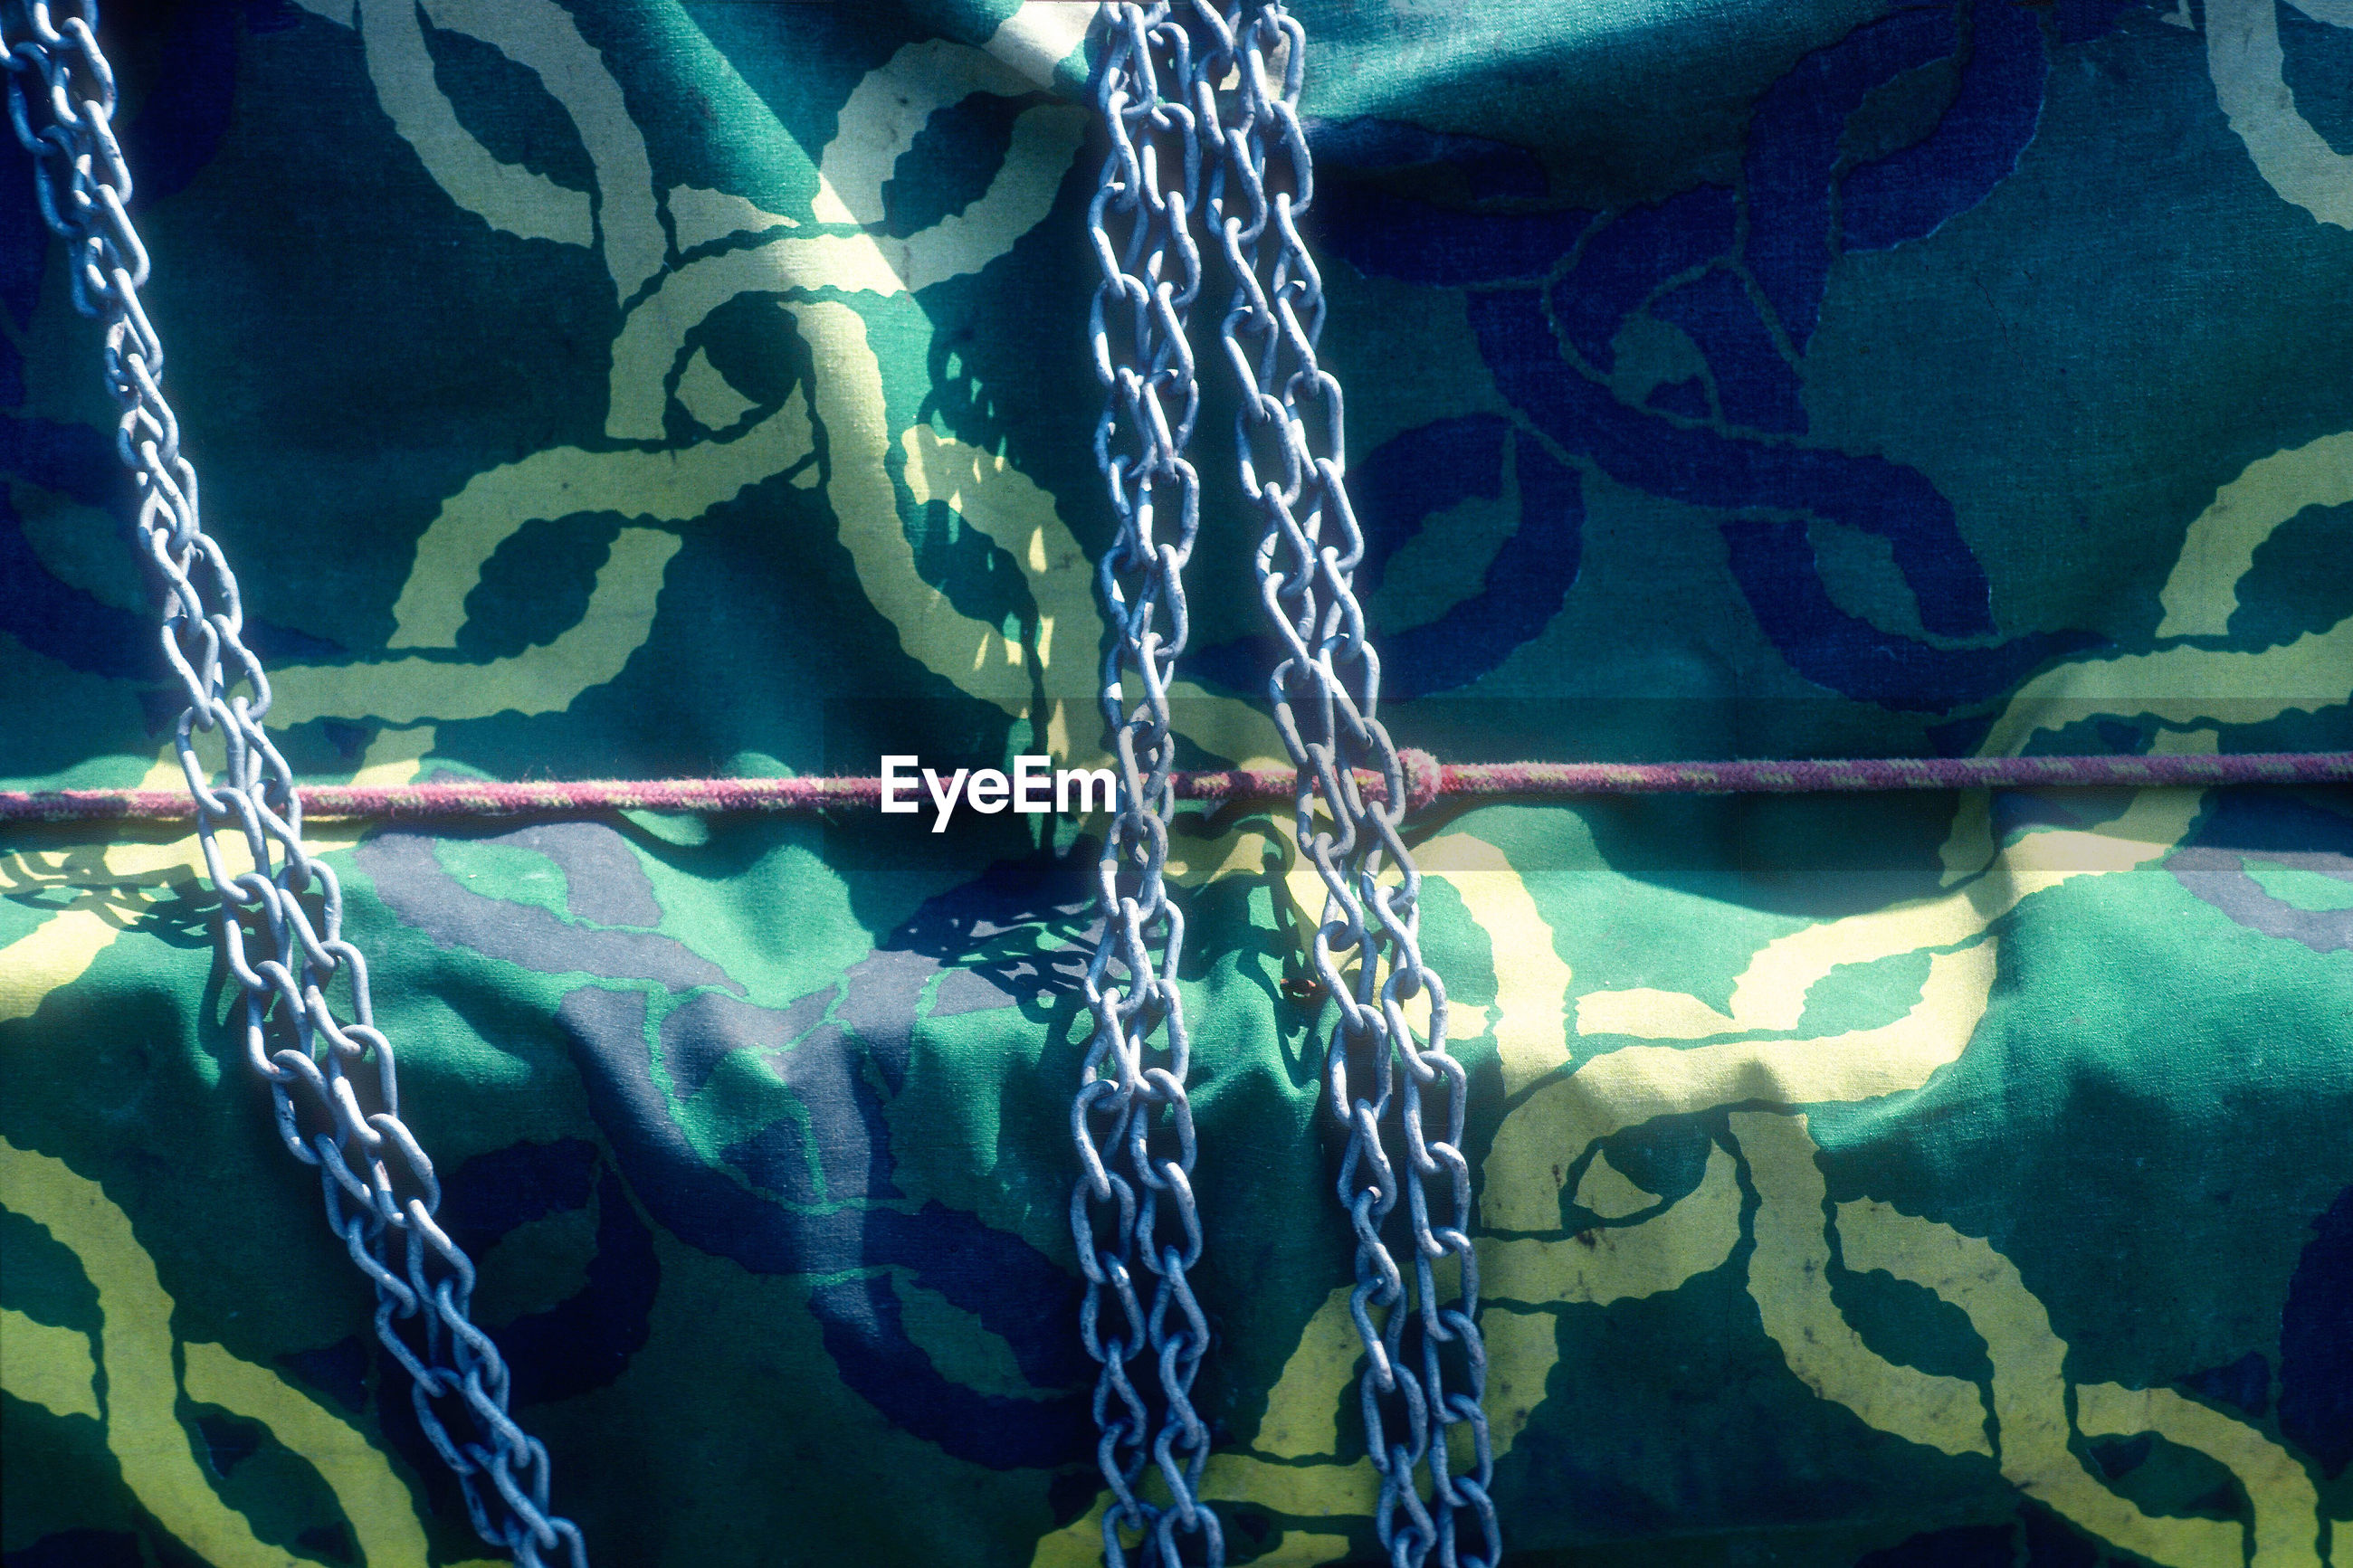 Close-up of chains on fabric